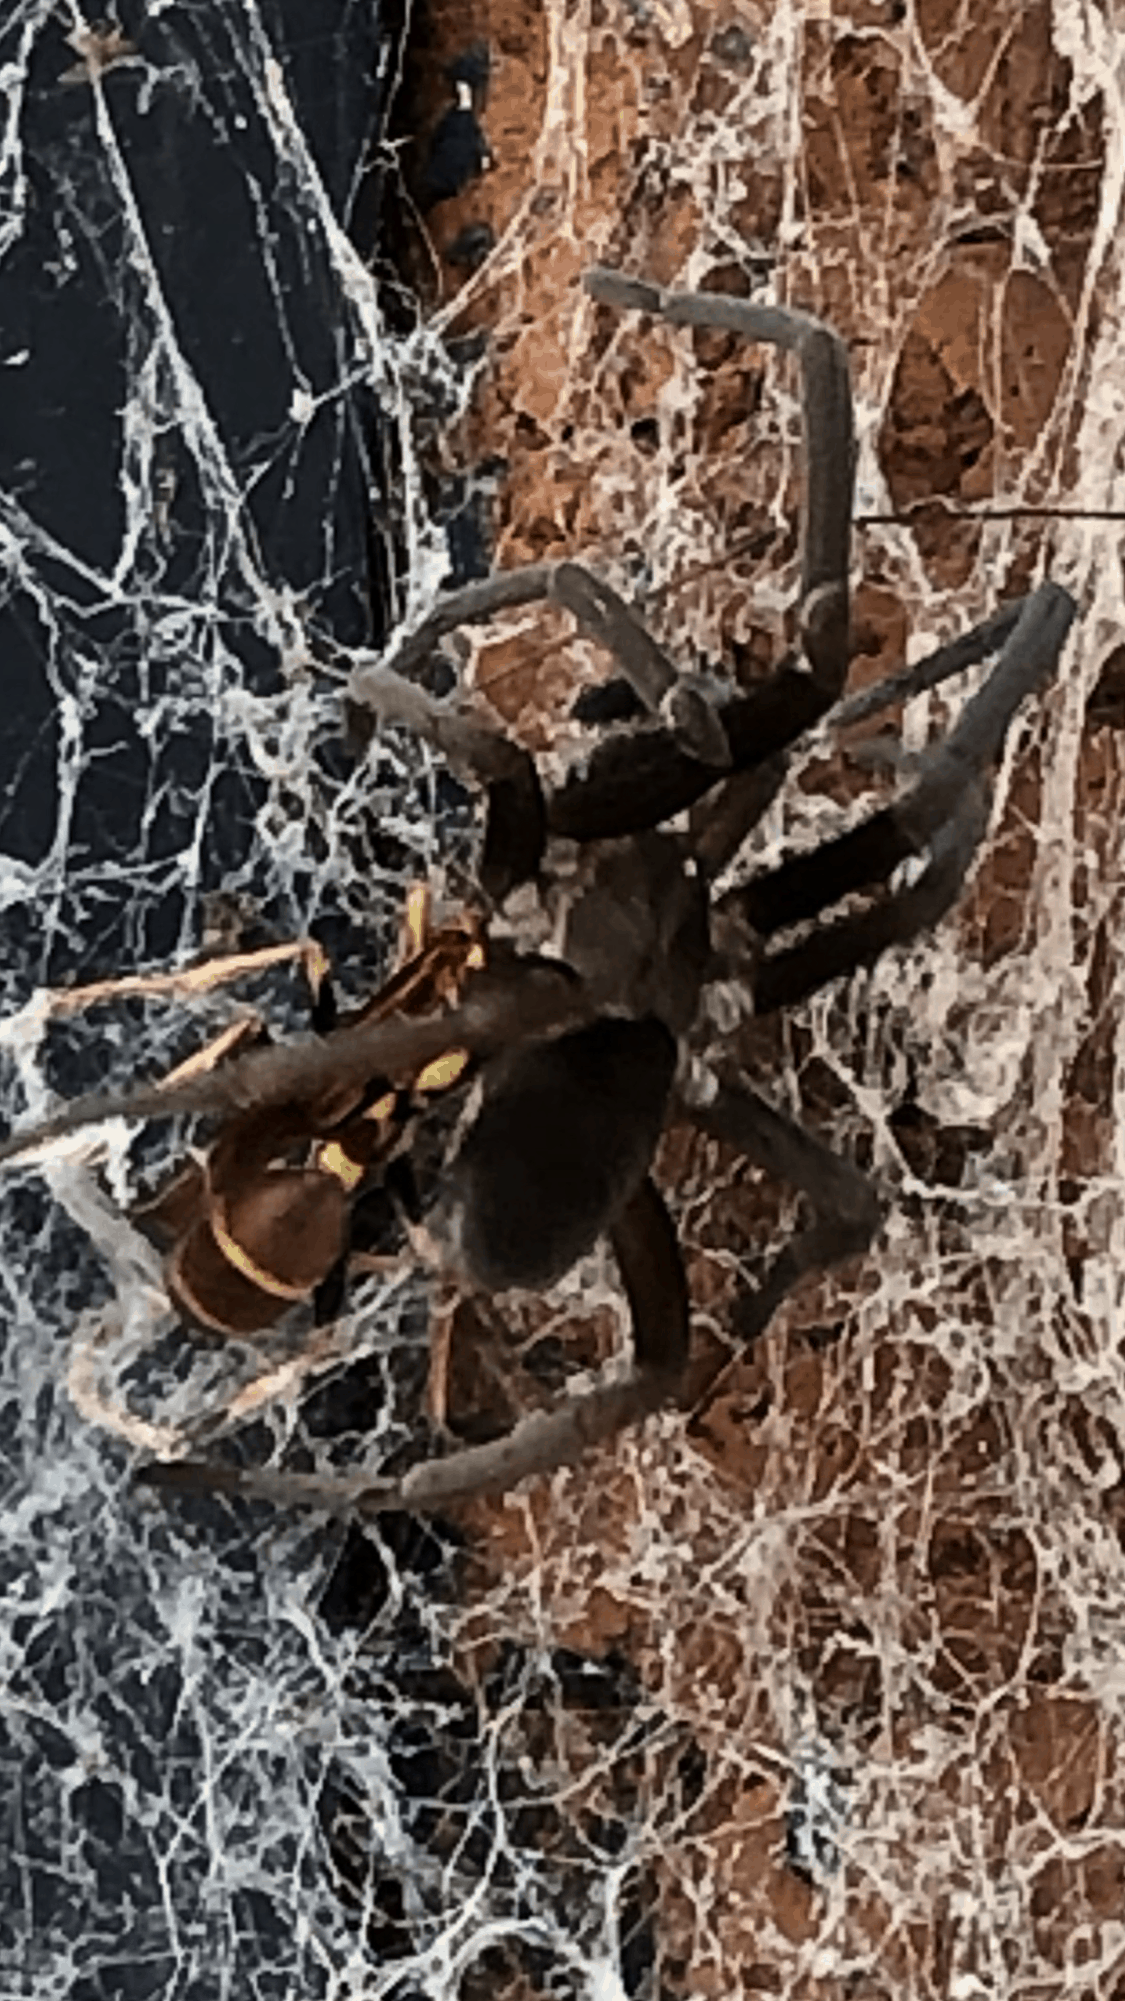 Picture of Kukulcania hibernalis (Southern House Spider) - Dorsal,Webs